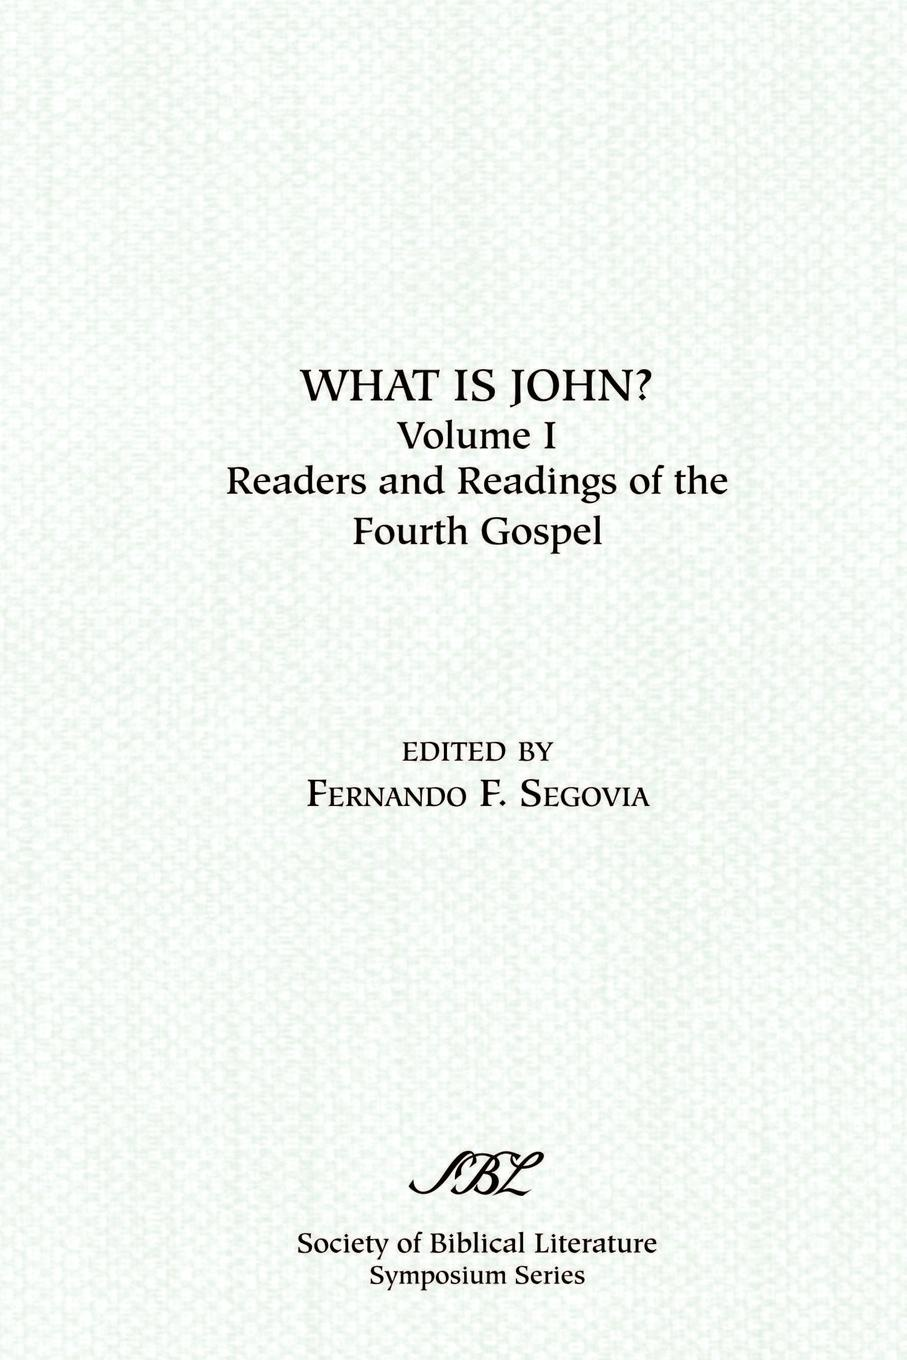 лучшая цена What is John? Readers and Readings in the Fourth Gospel, Vol. 1